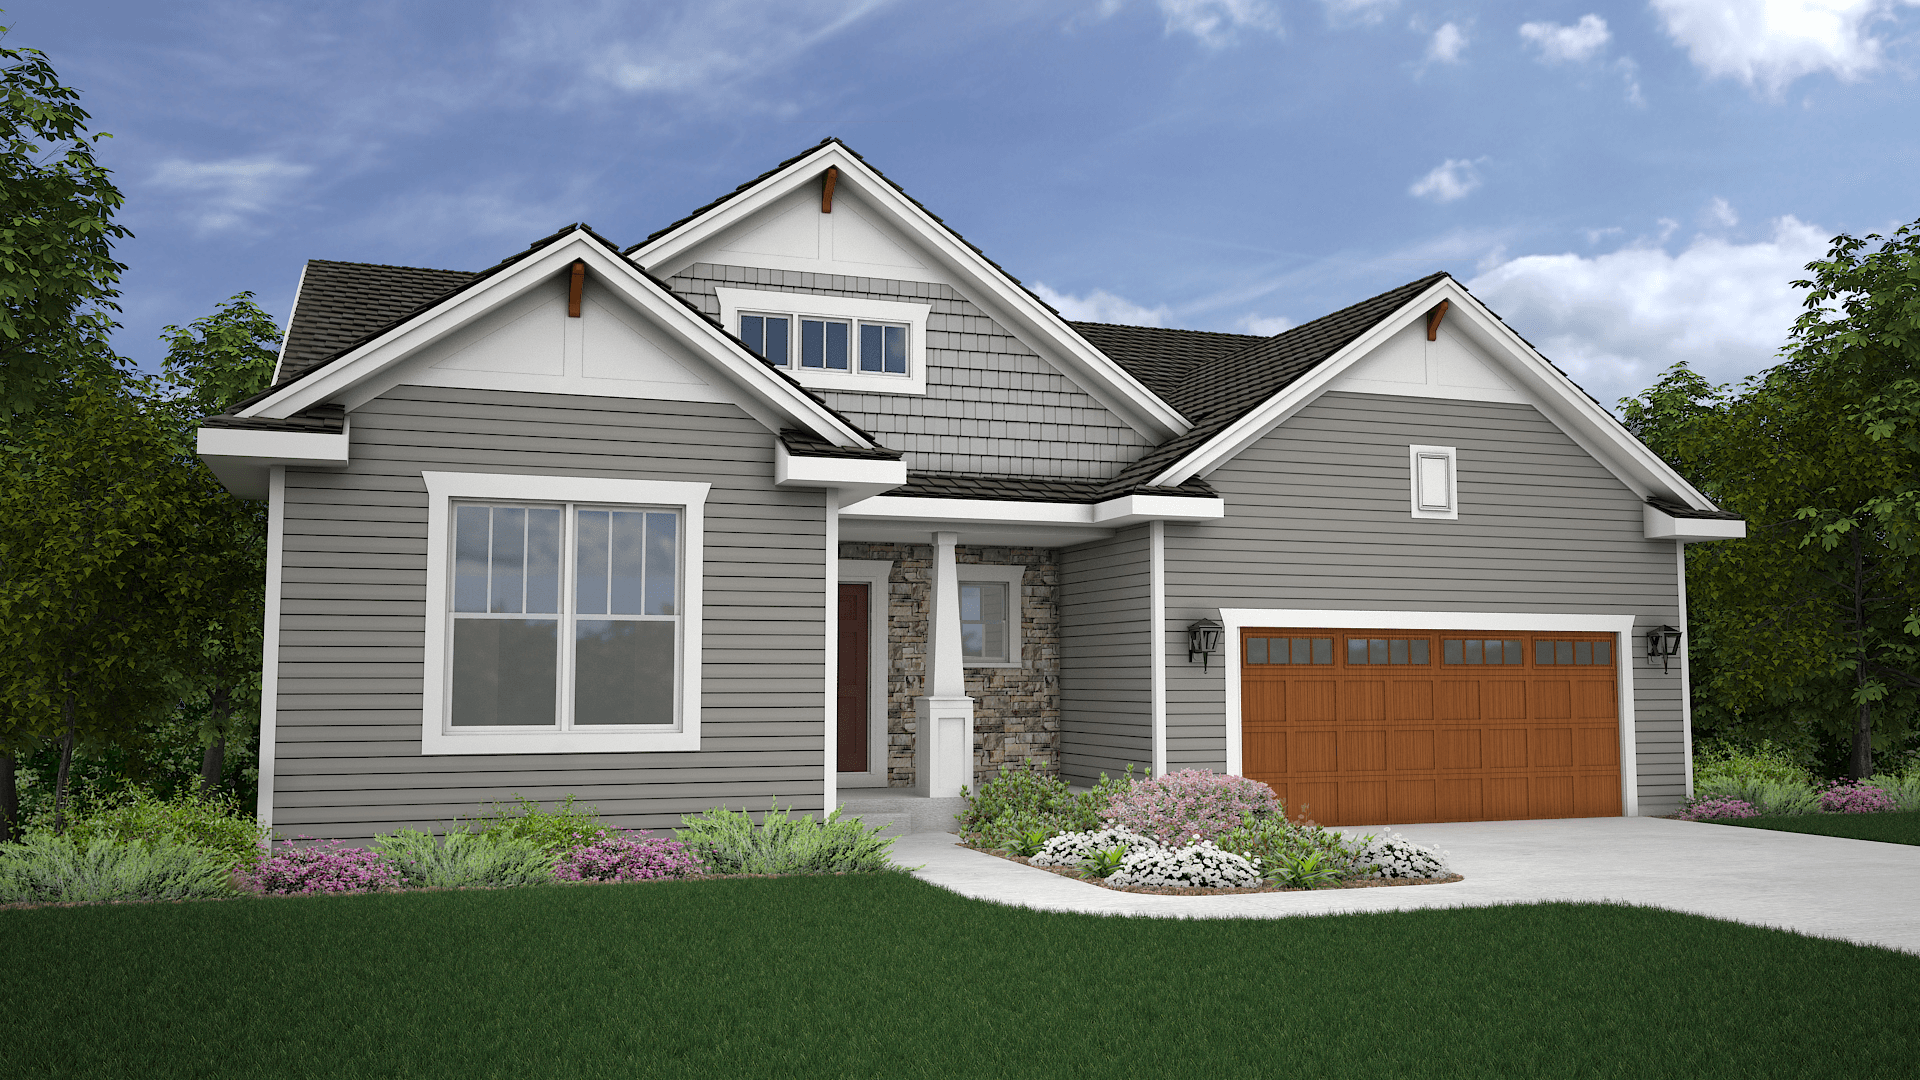 New Construction Homes & Plans in Oconomowoc, WI | 642 Homes ...